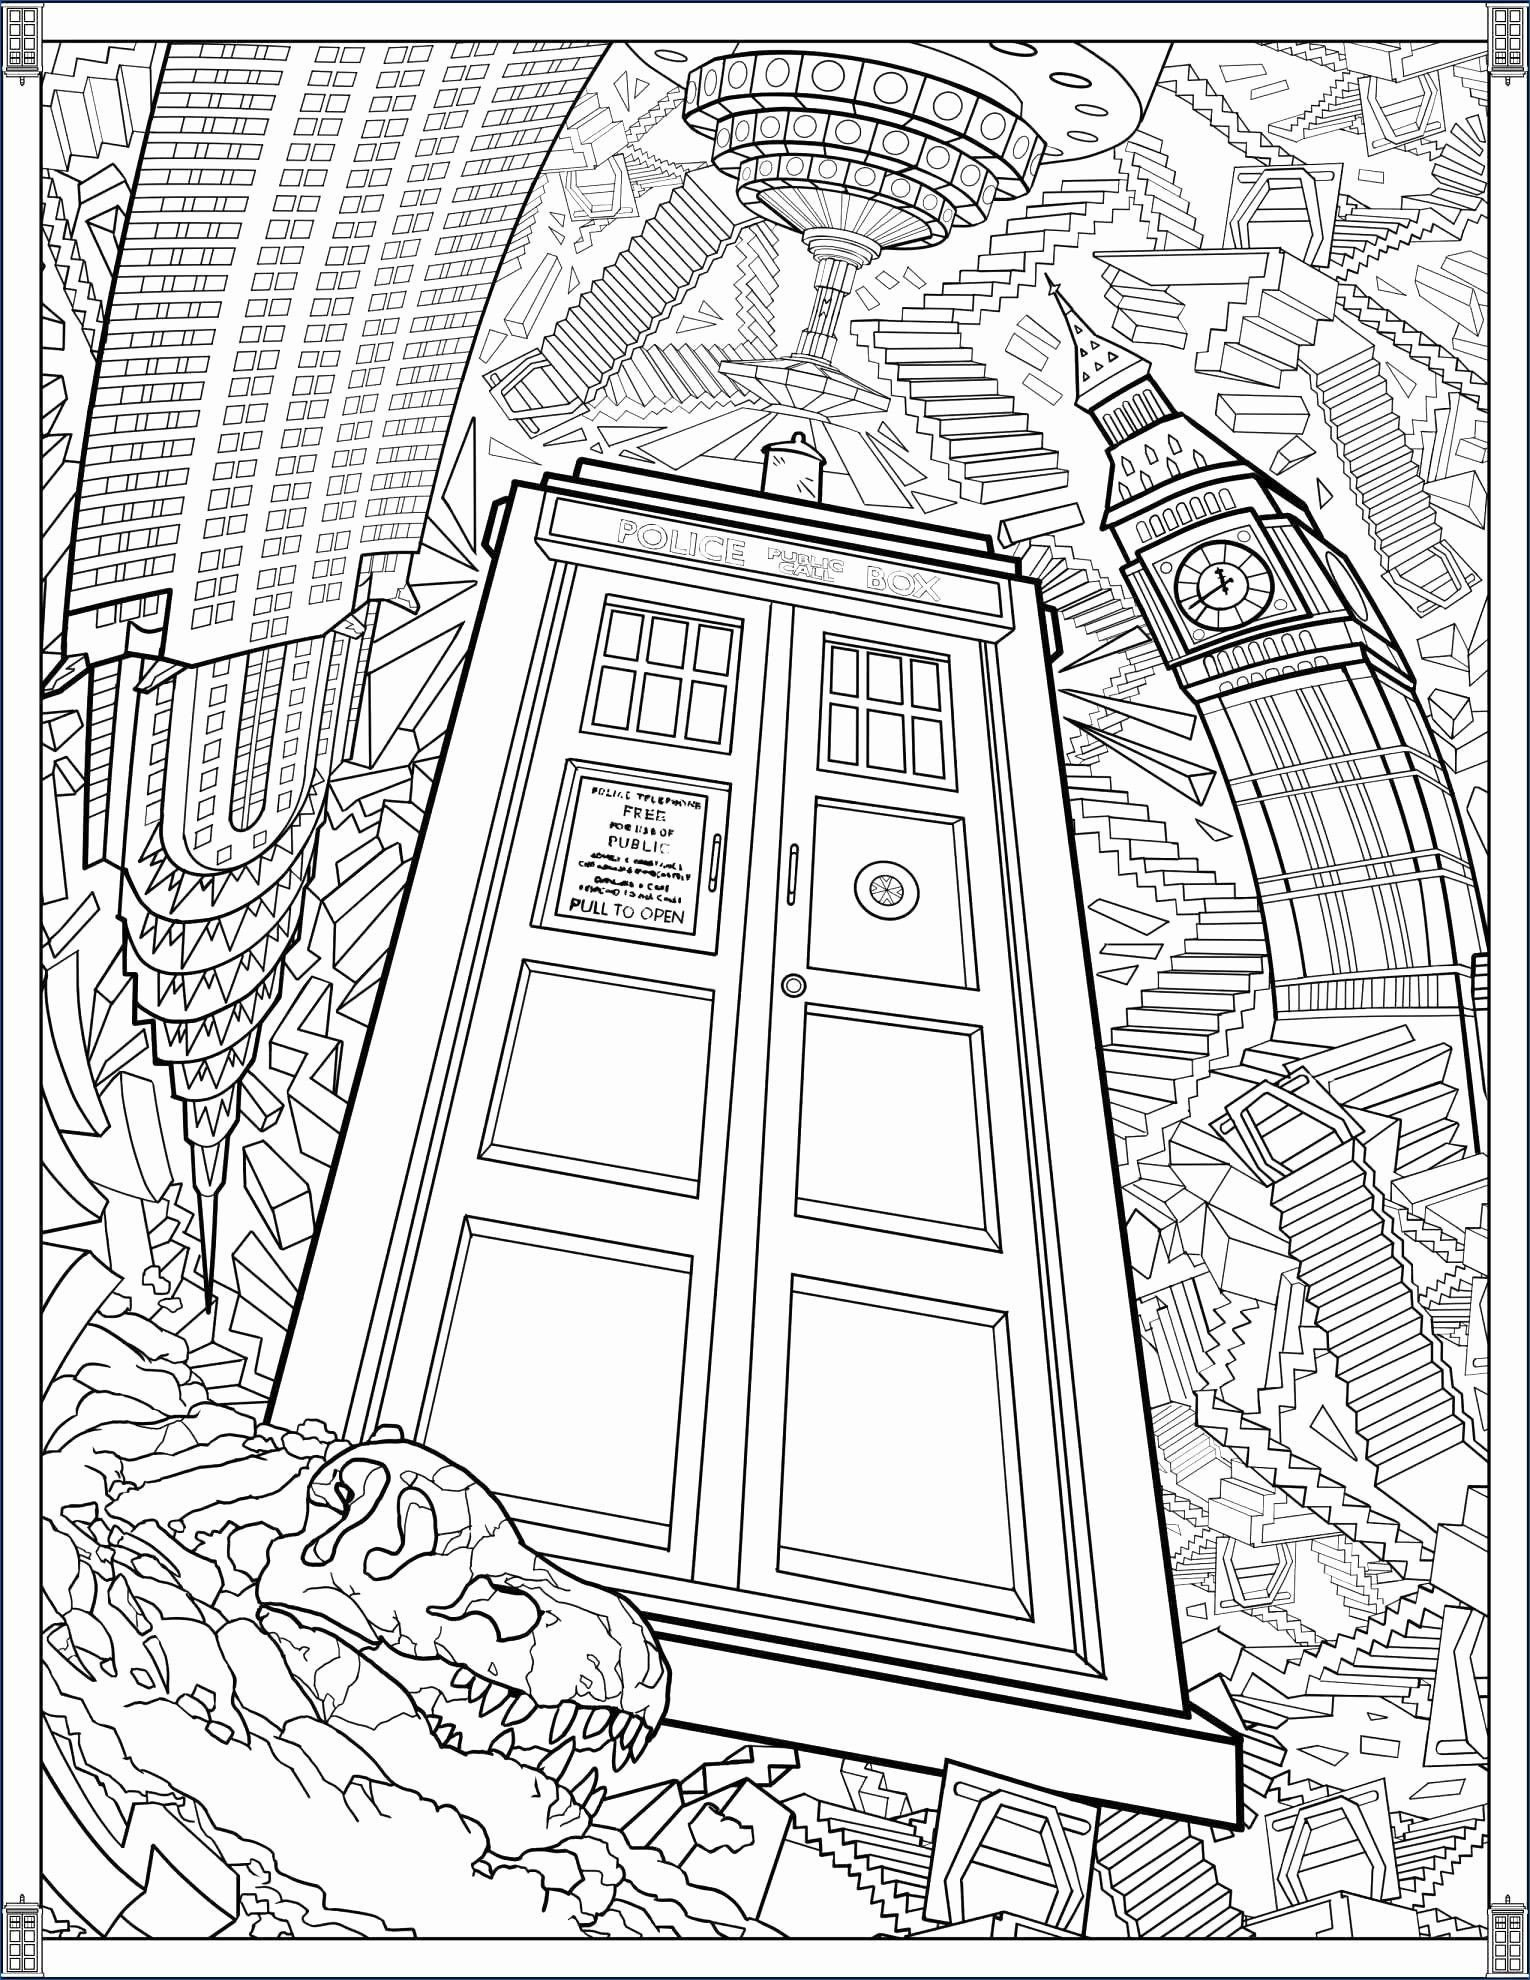 Coloring Pages : Coloring Hidden Colornumber Math regarding Printable Multiplication Colouring Hidden Pictures